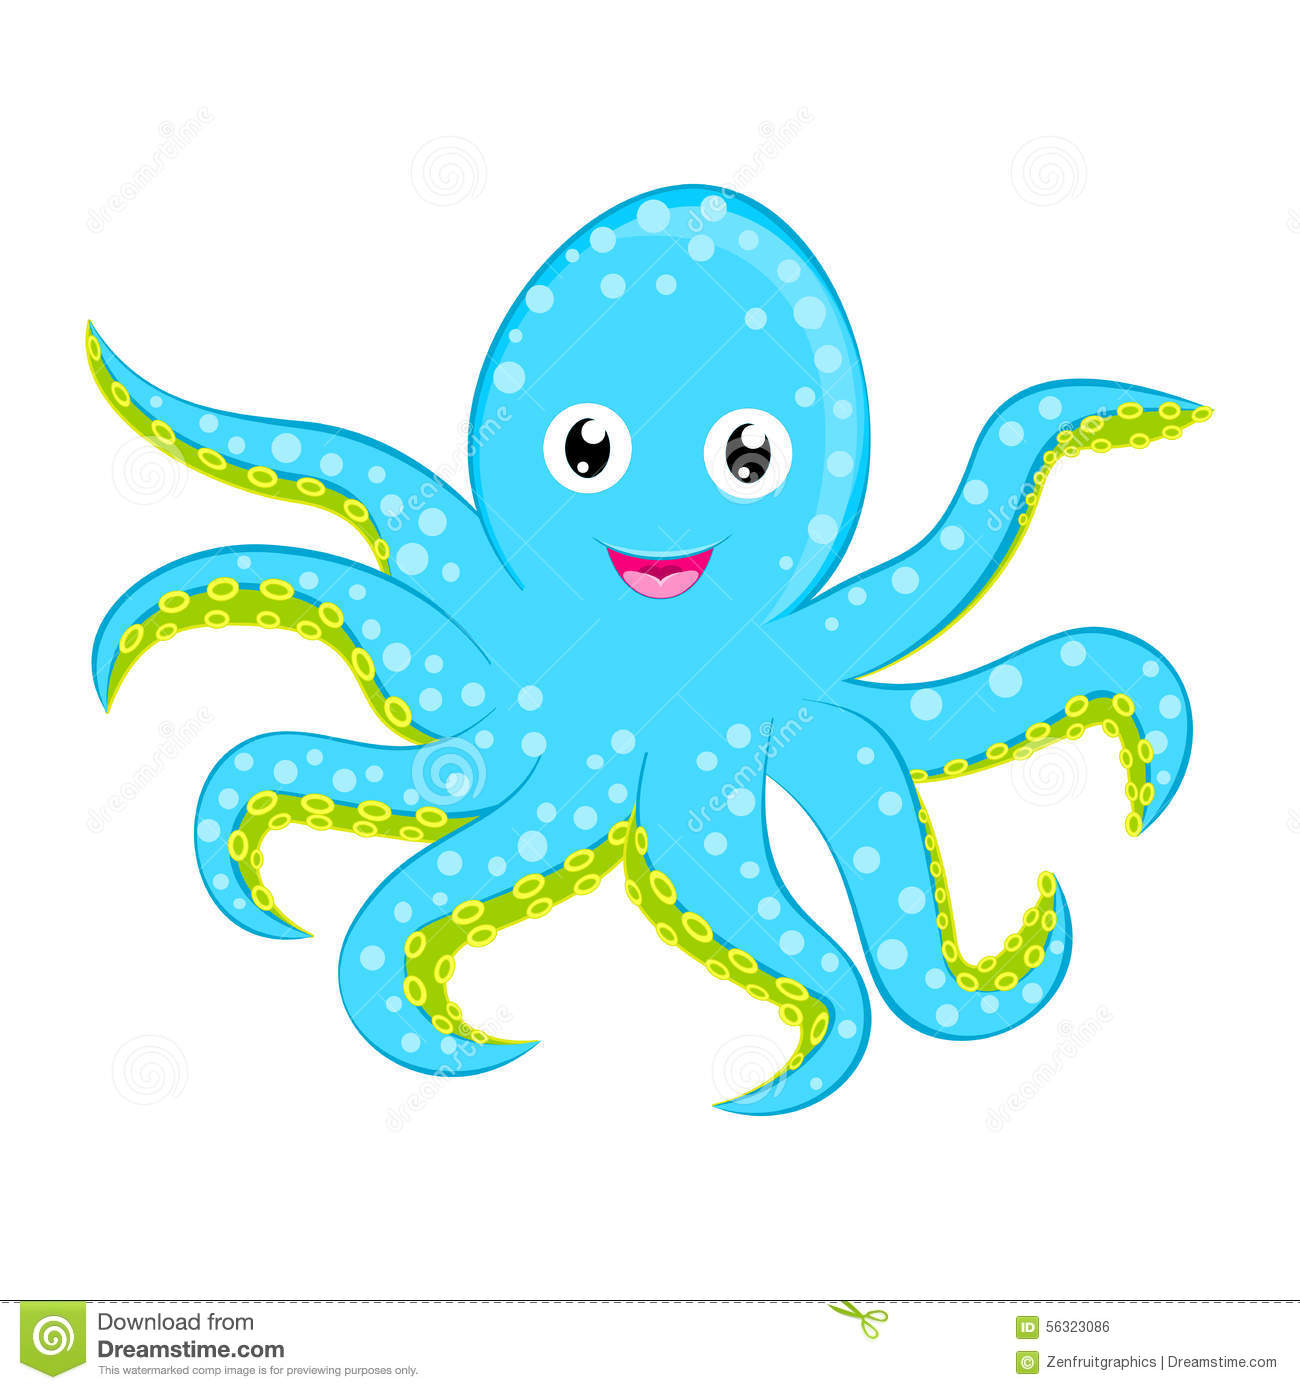 Cute baby octopus vector Cyan blue spotted cartoon character isolated on white background Ocean animal, sea life, funny smiling sq